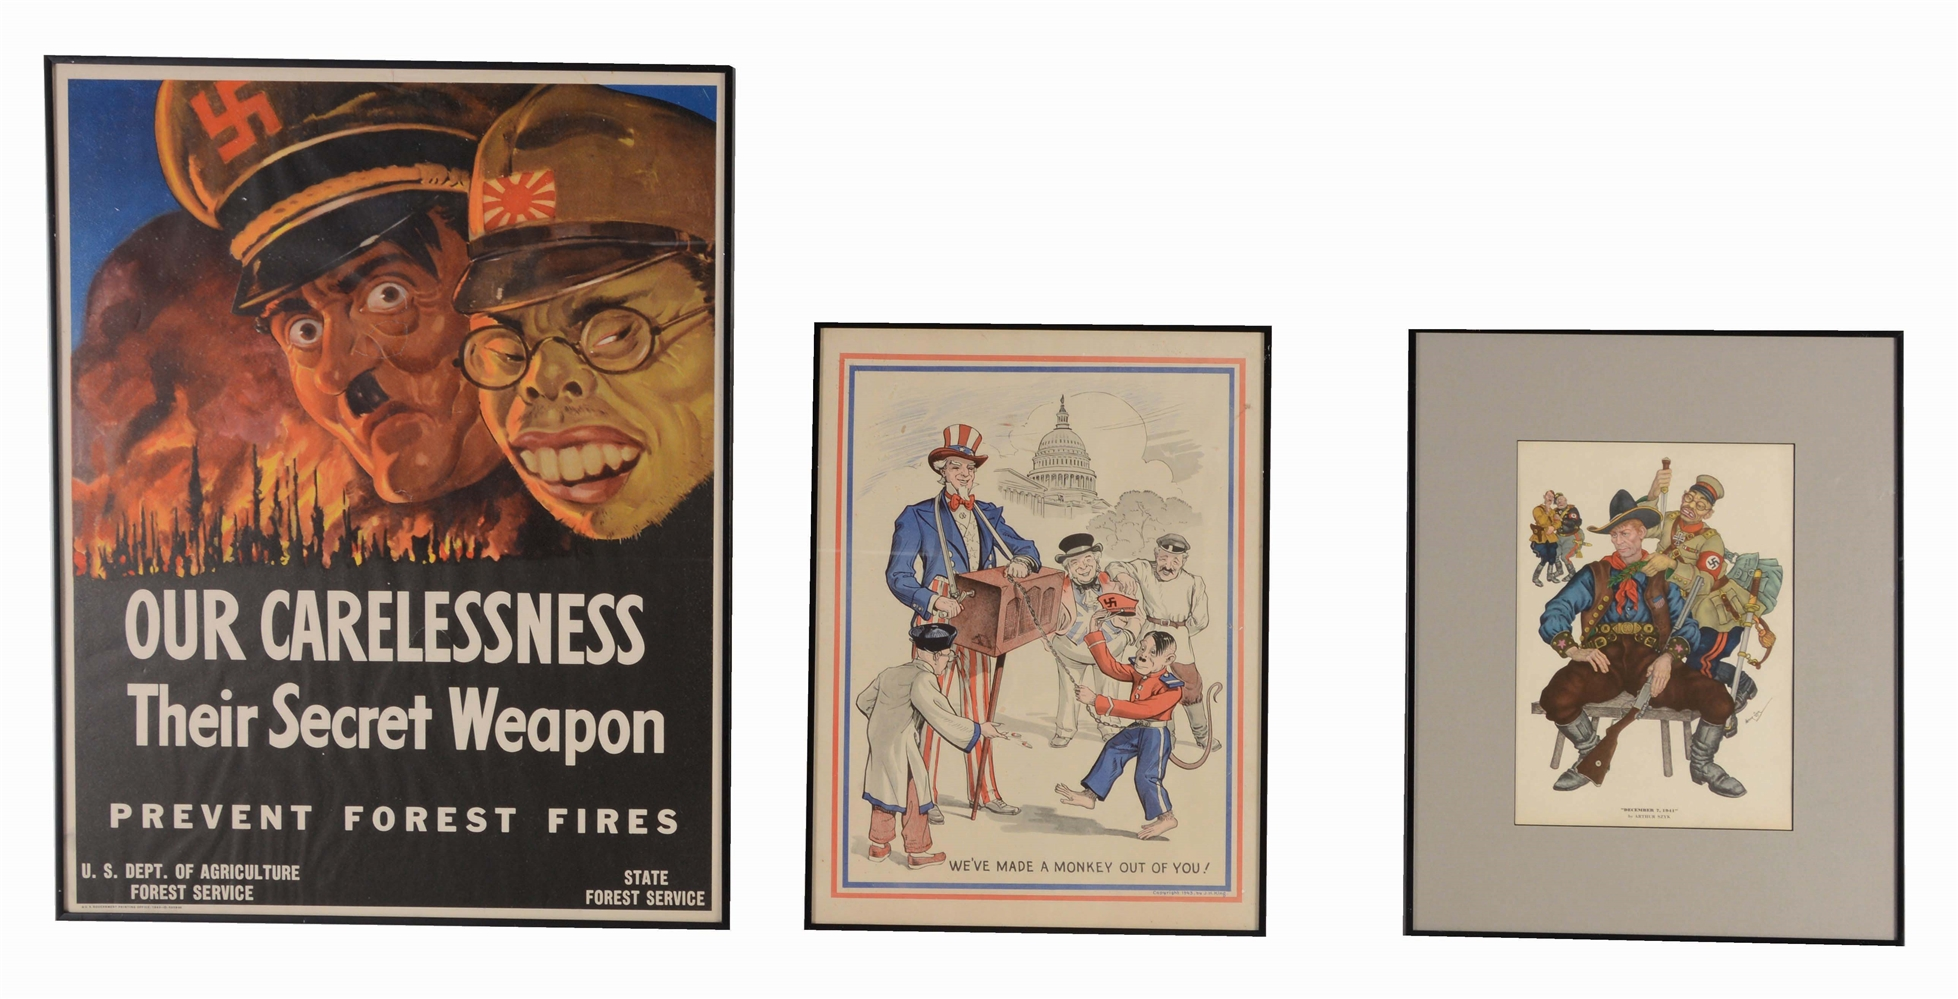 LOT OF 3: WORLD WAR II POSTERS FEATURING HITLER, MUSSOLINI, HIROHITO.